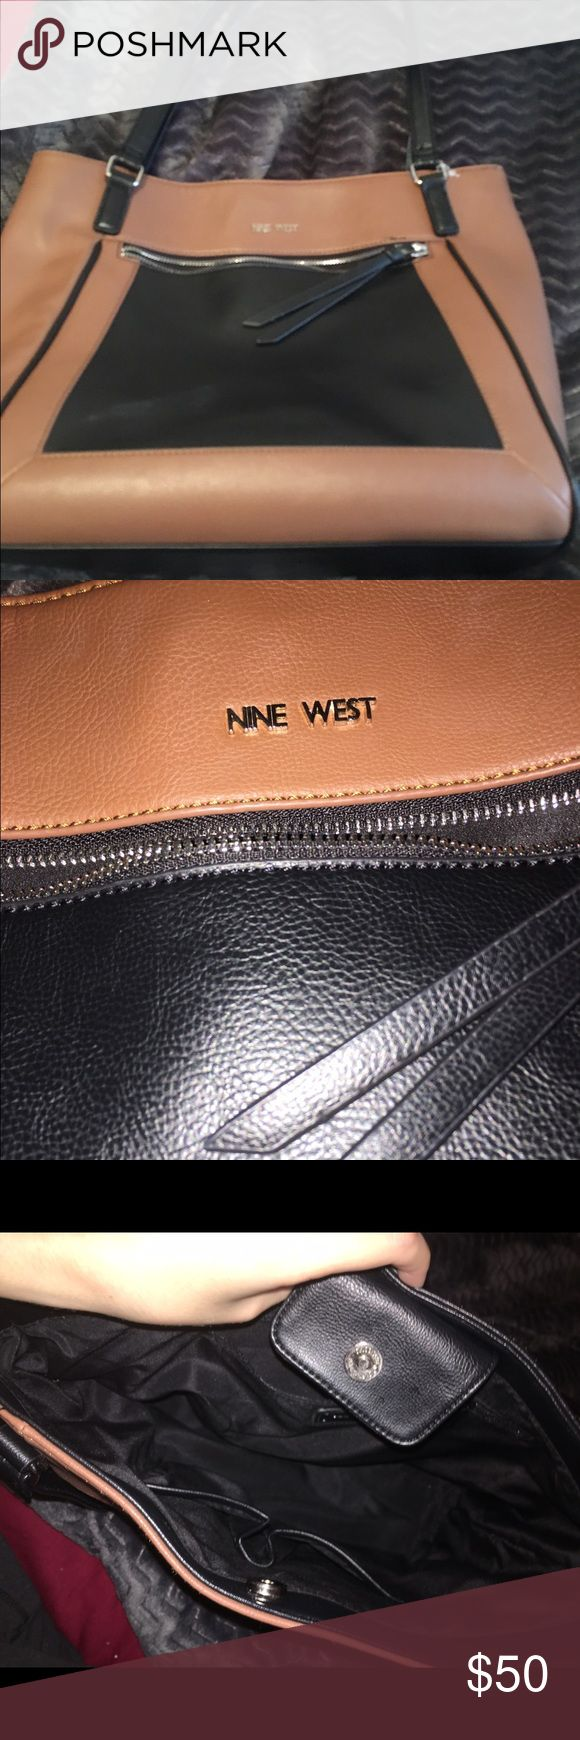 Nine West purse Black and brown Nine West purse. Perfect condition! Nine West Bags Shoulder Bags